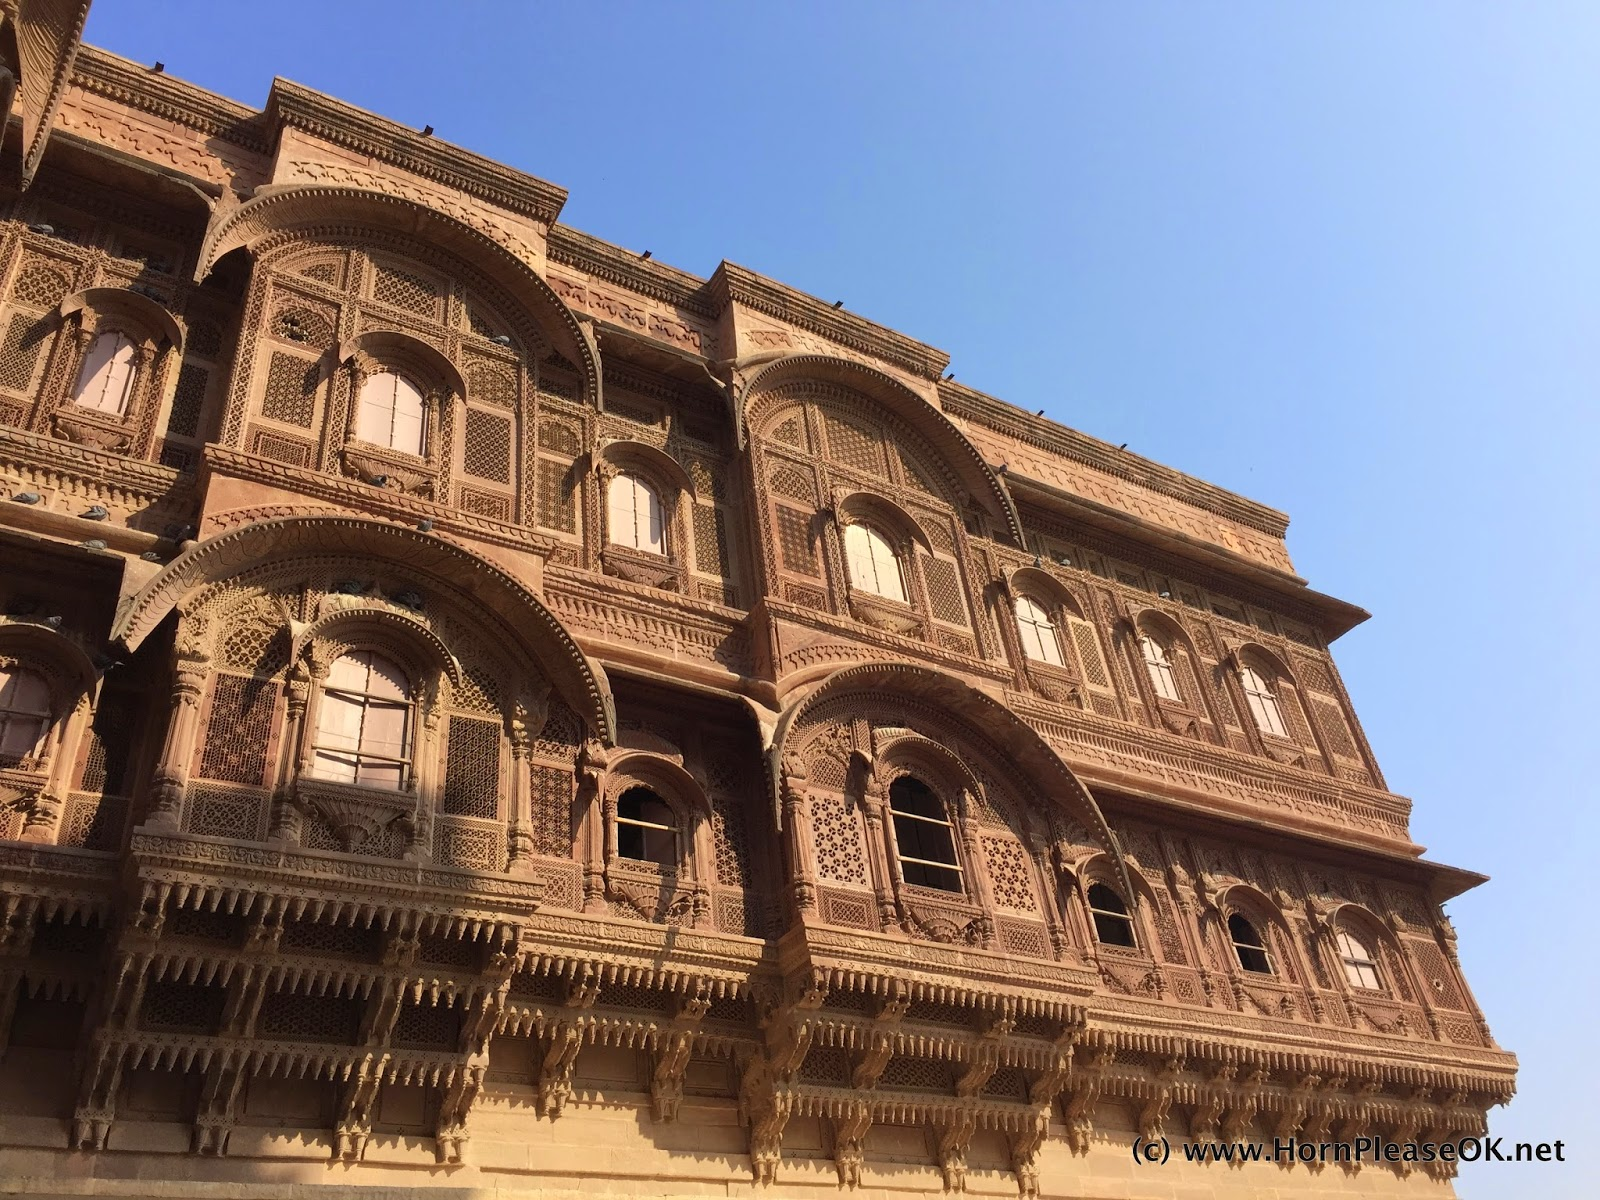 Palaces overlooking the coronation hall in Mehrangarh Fort